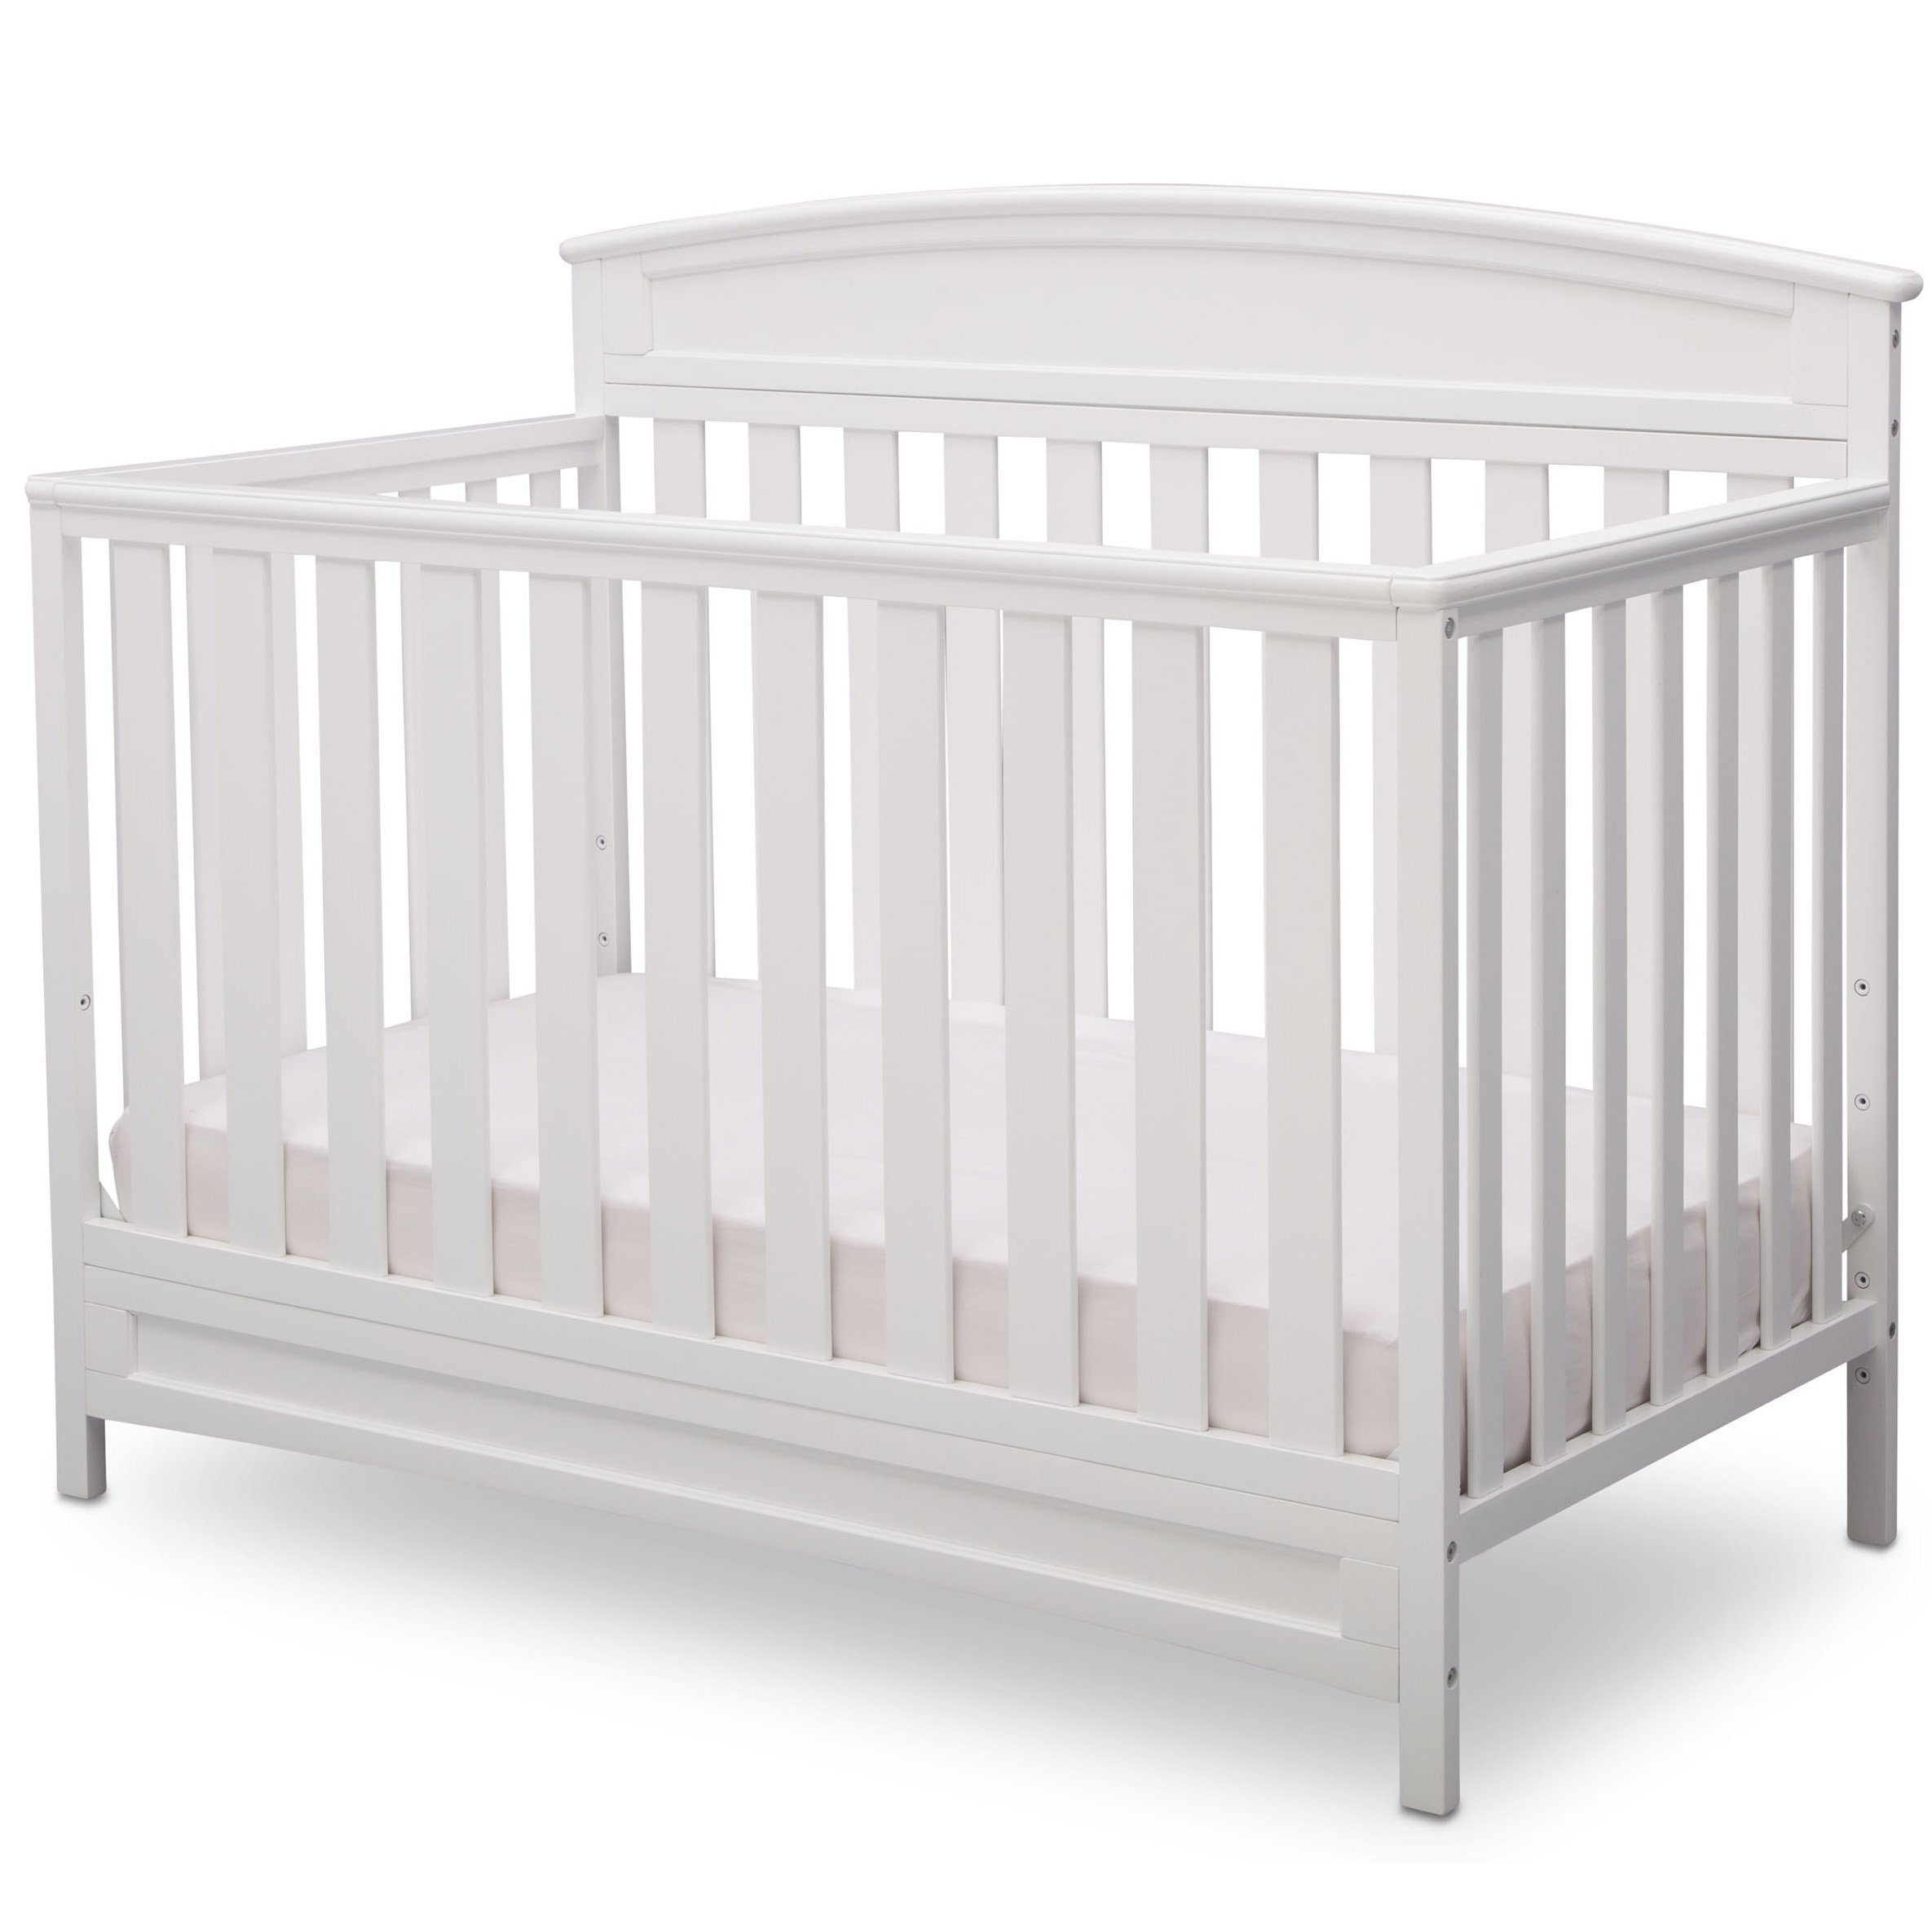 Delta Children Sutton 4 in 1 Convertible Crib, White